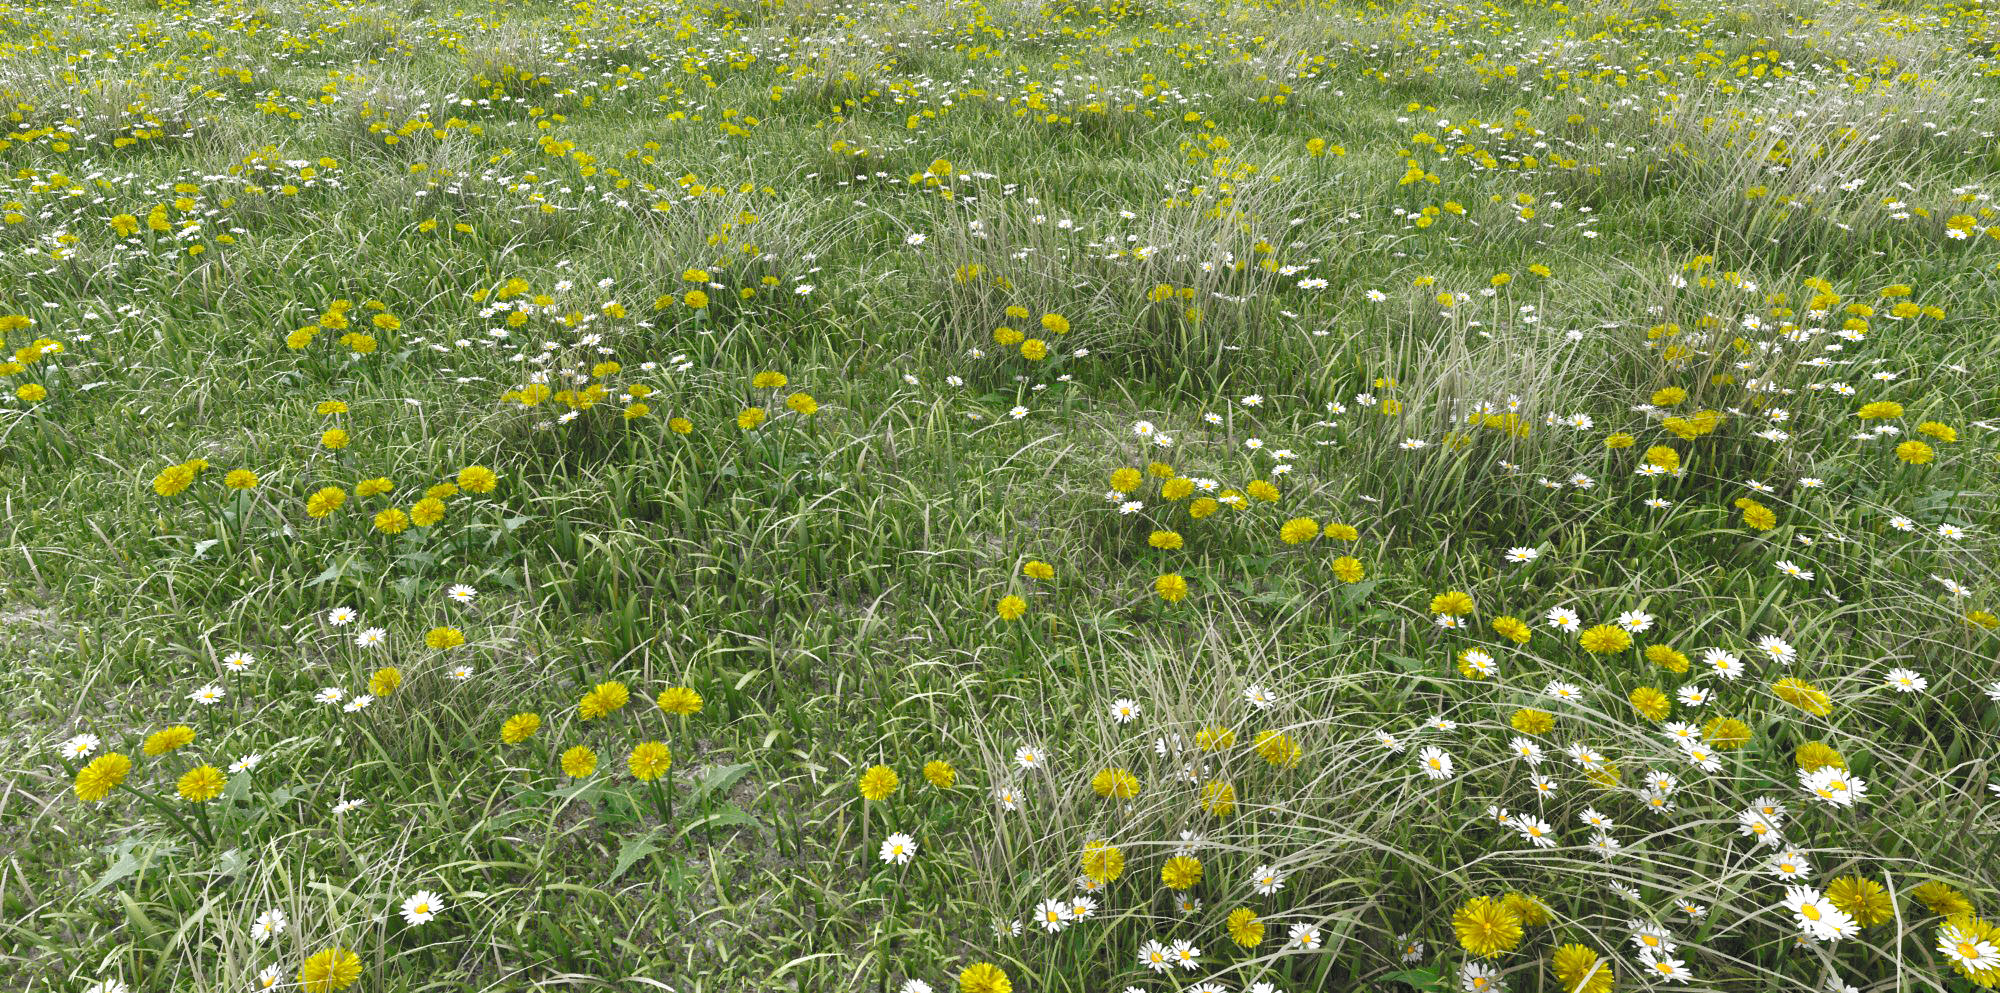 The Meadow - Grass close up